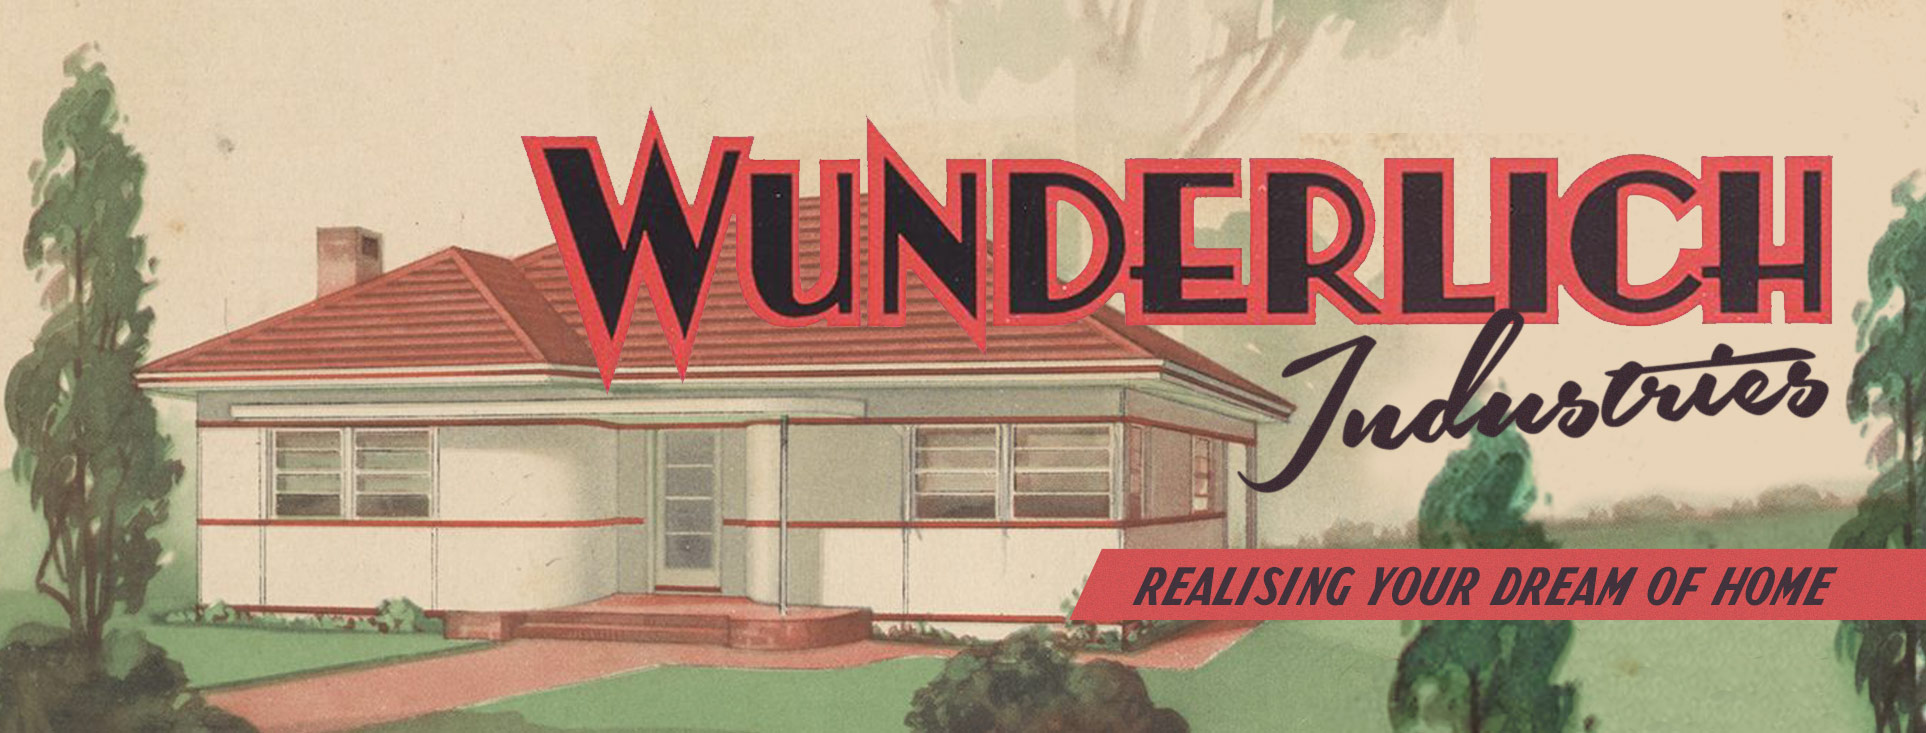 Wunderlich Industries, 'Realising your Dream of Home'